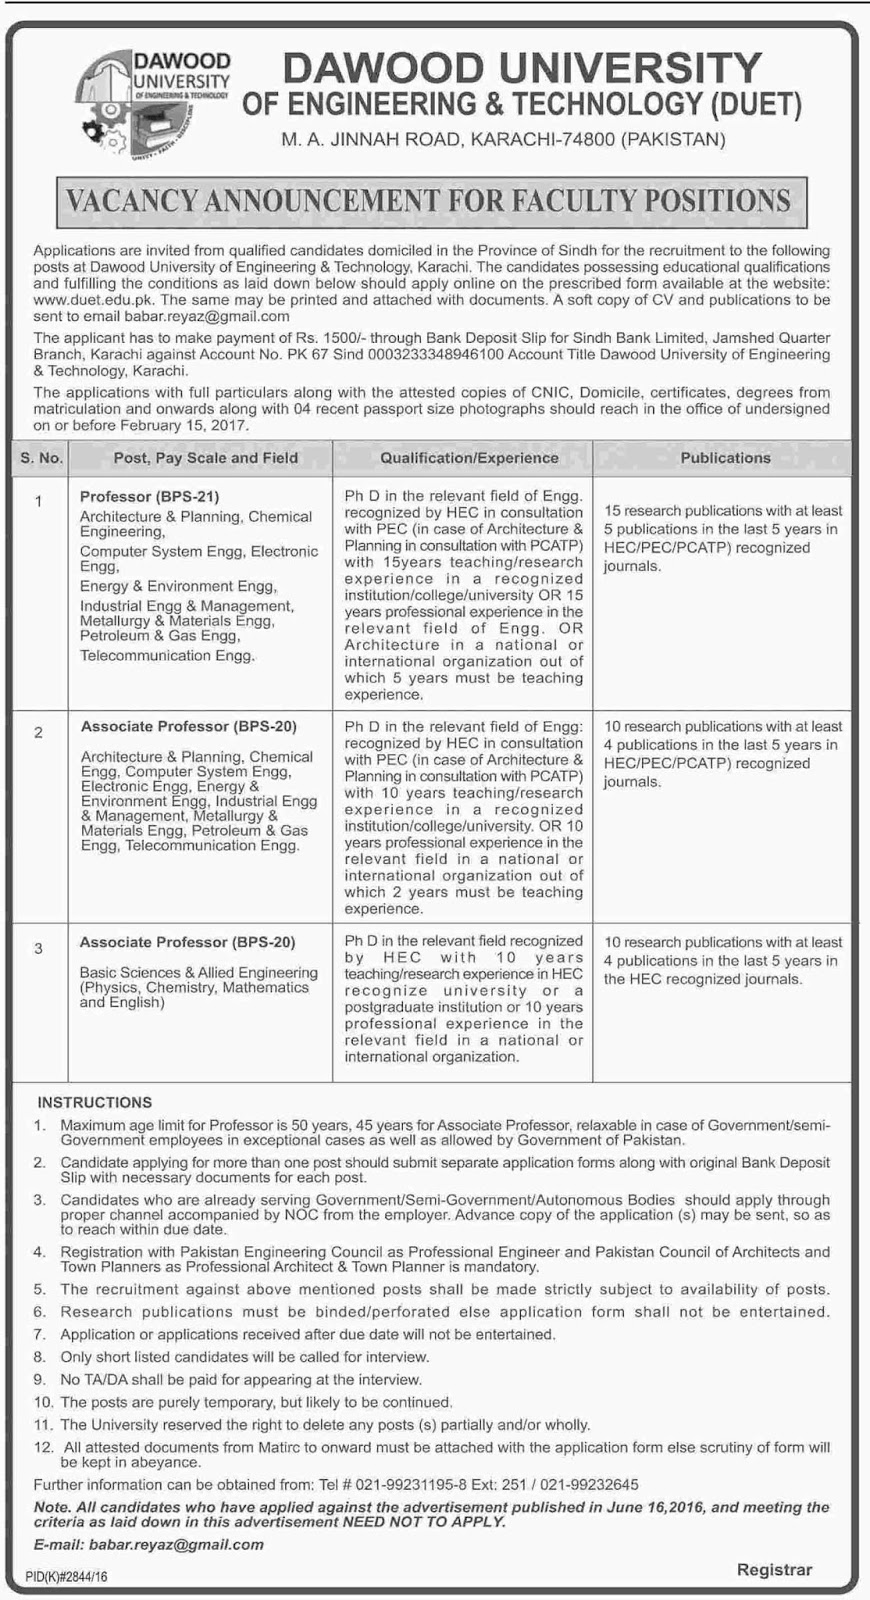 Dawood University Of Engineering & Technology Karachi Jobs